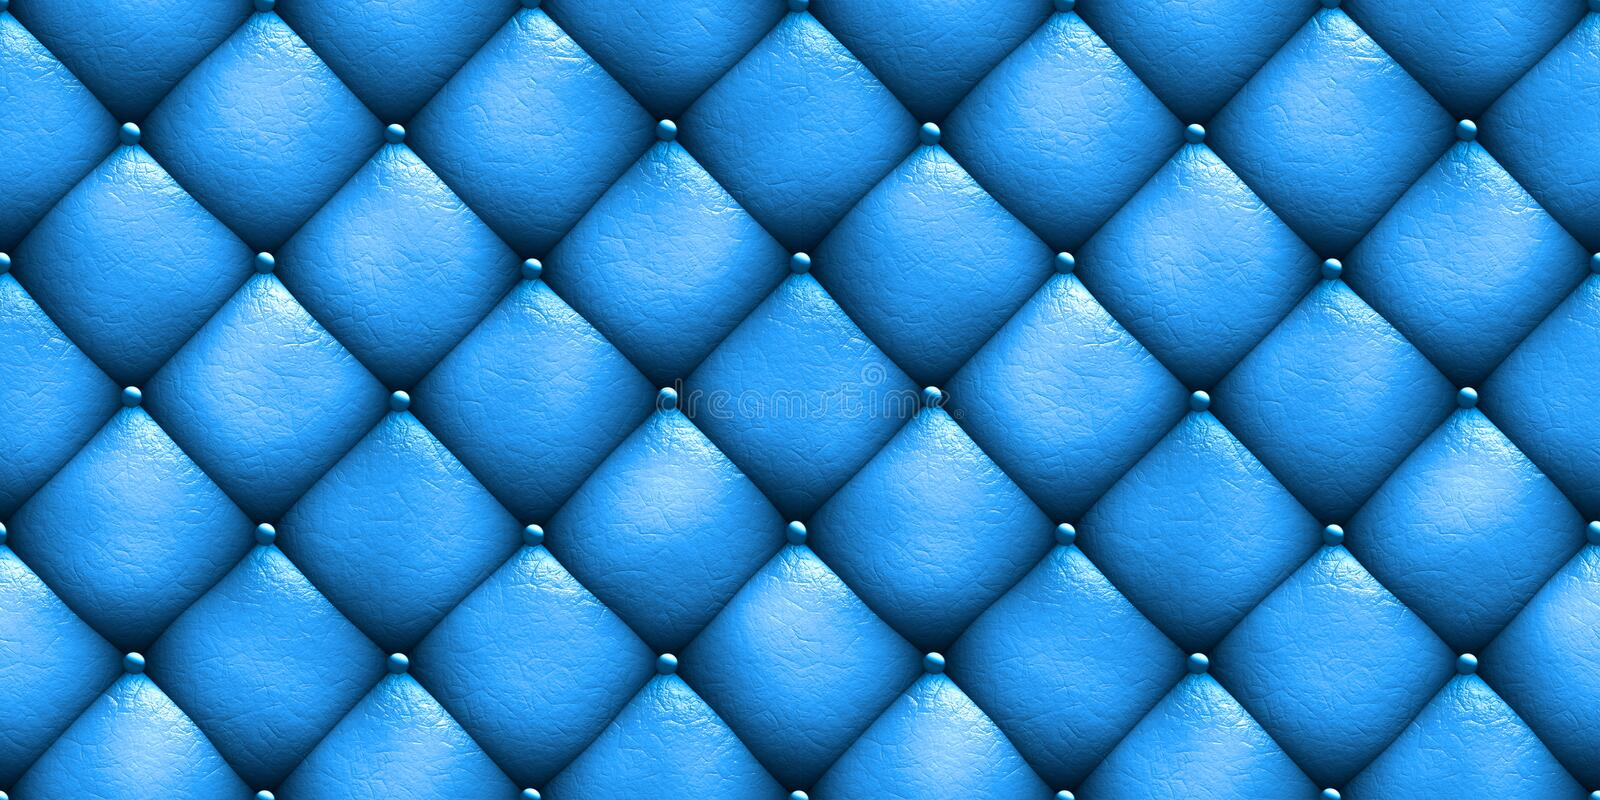 Seamless Texture Leather Upholstery Sofa Blue 3d